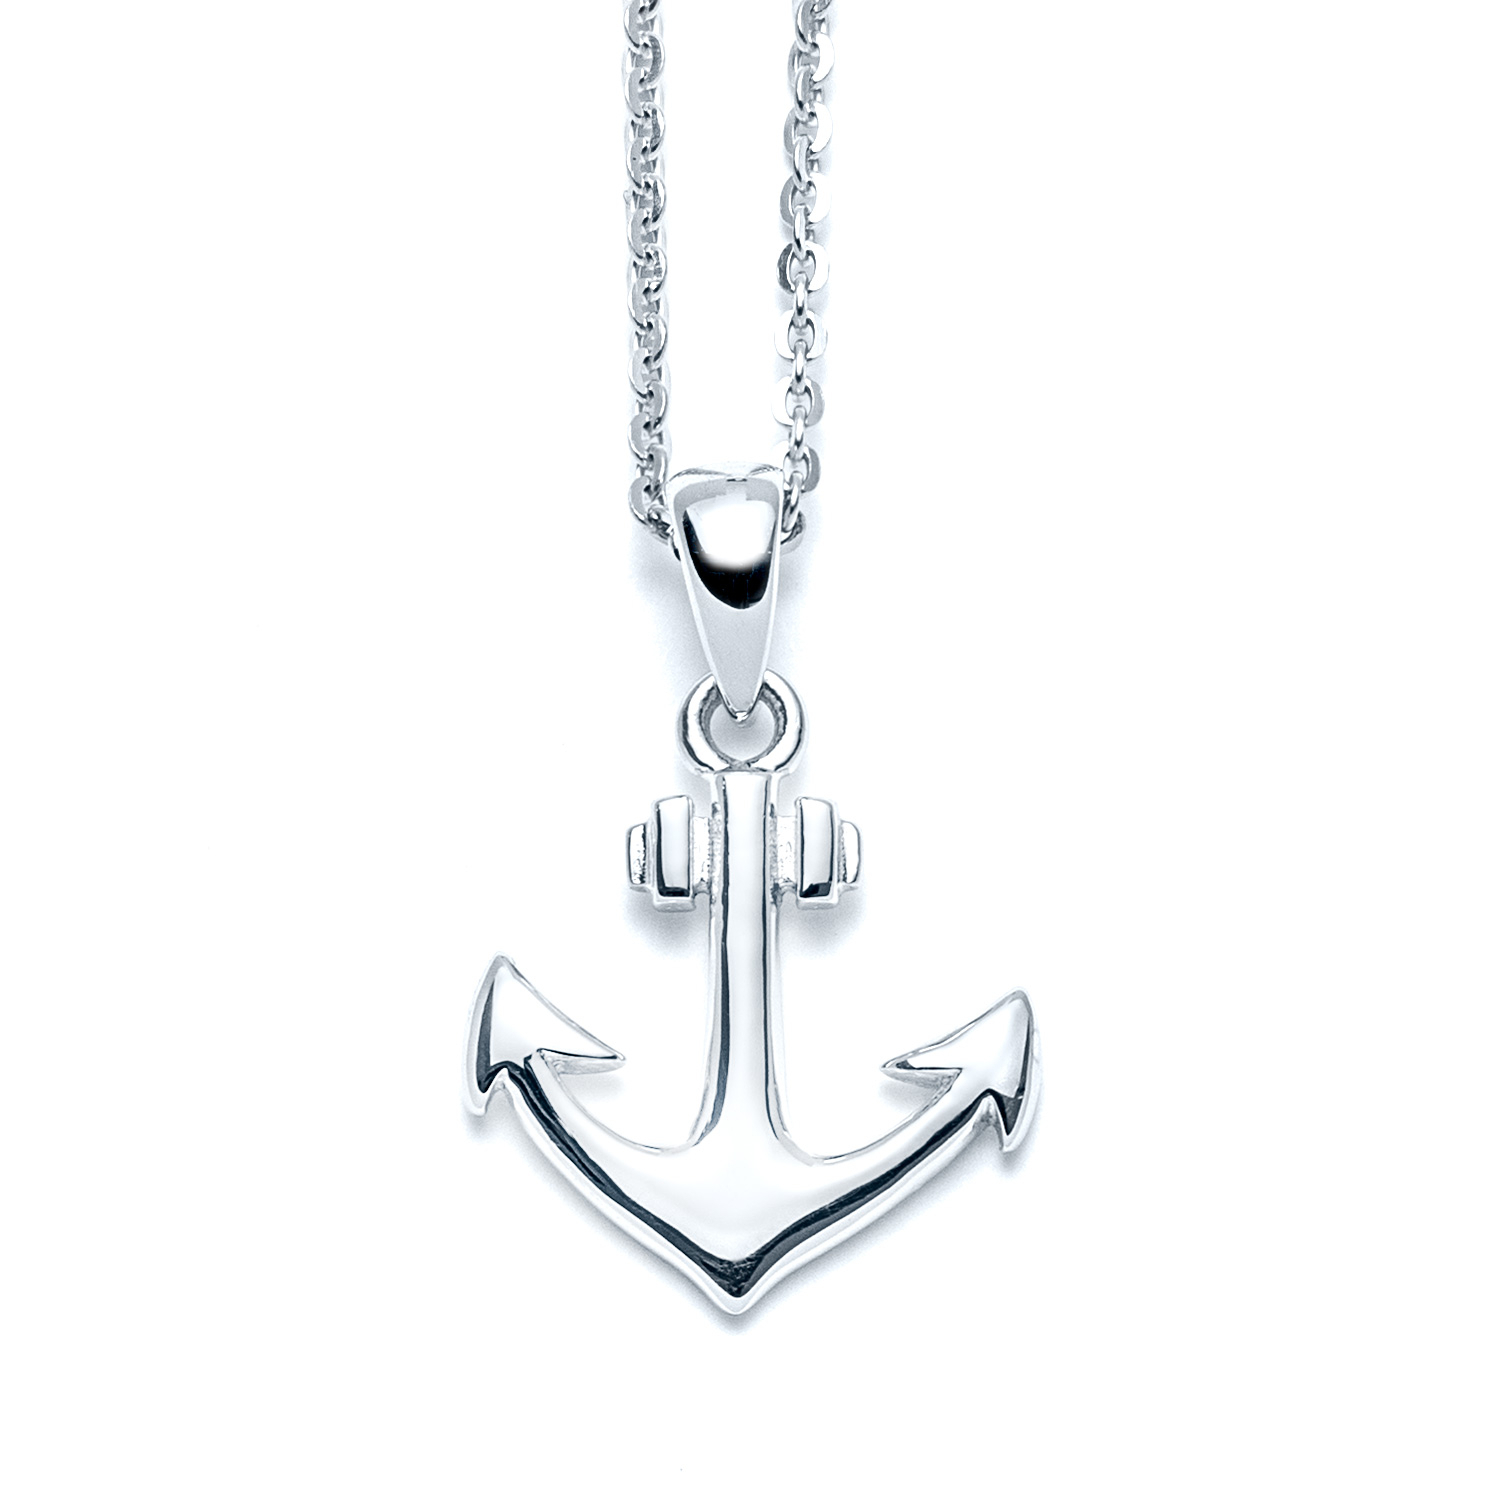 Classic Small Anchor Necklace Regarding Newest Classic Anchor Chain Necklaces (View 8 of 25)